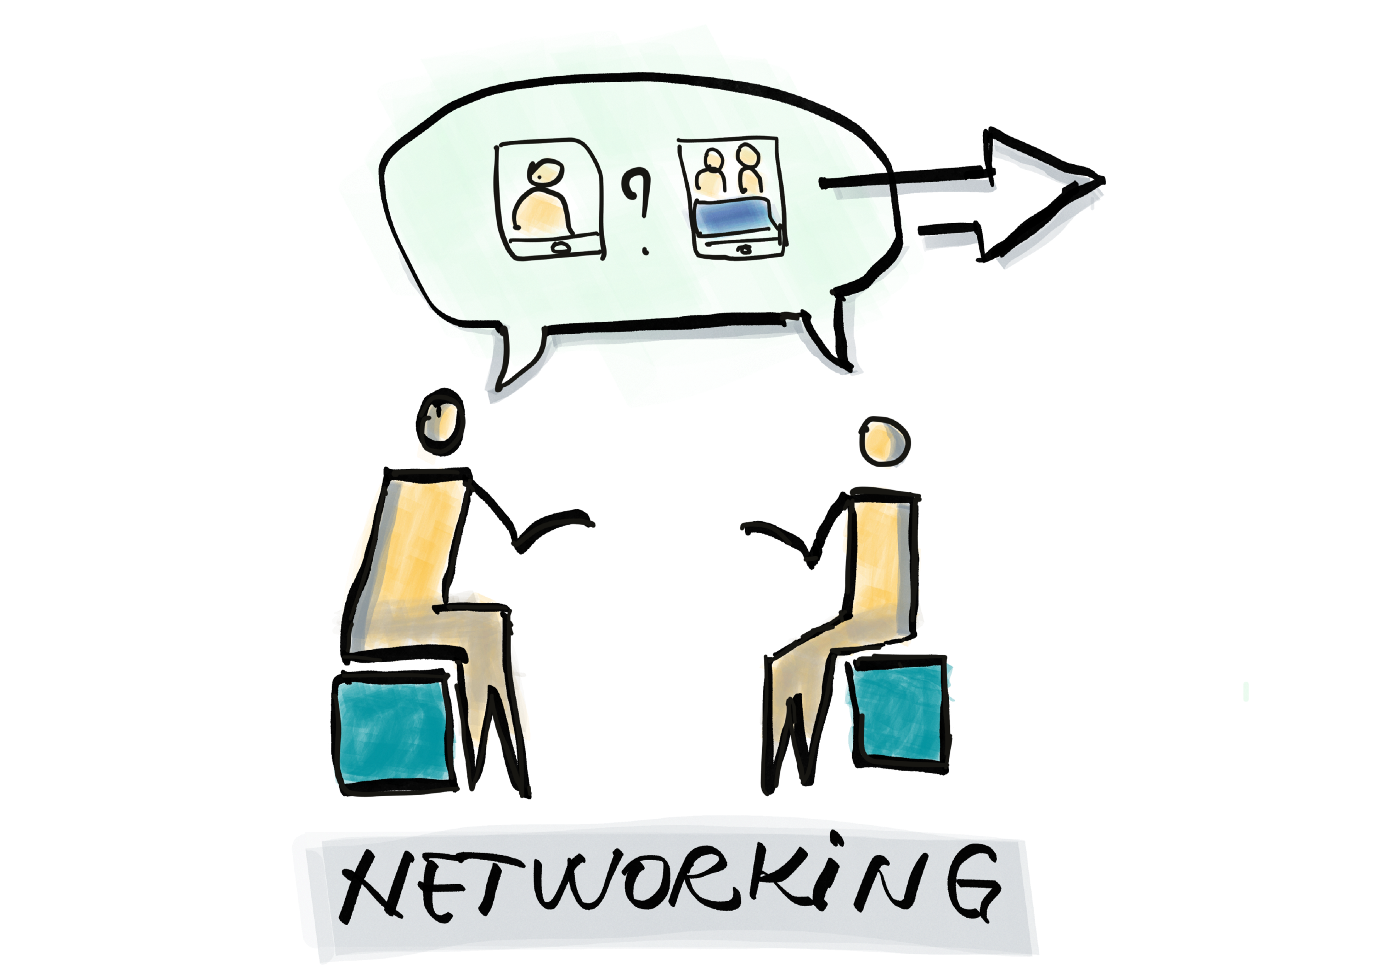 The Product Owner hosting a networking evening